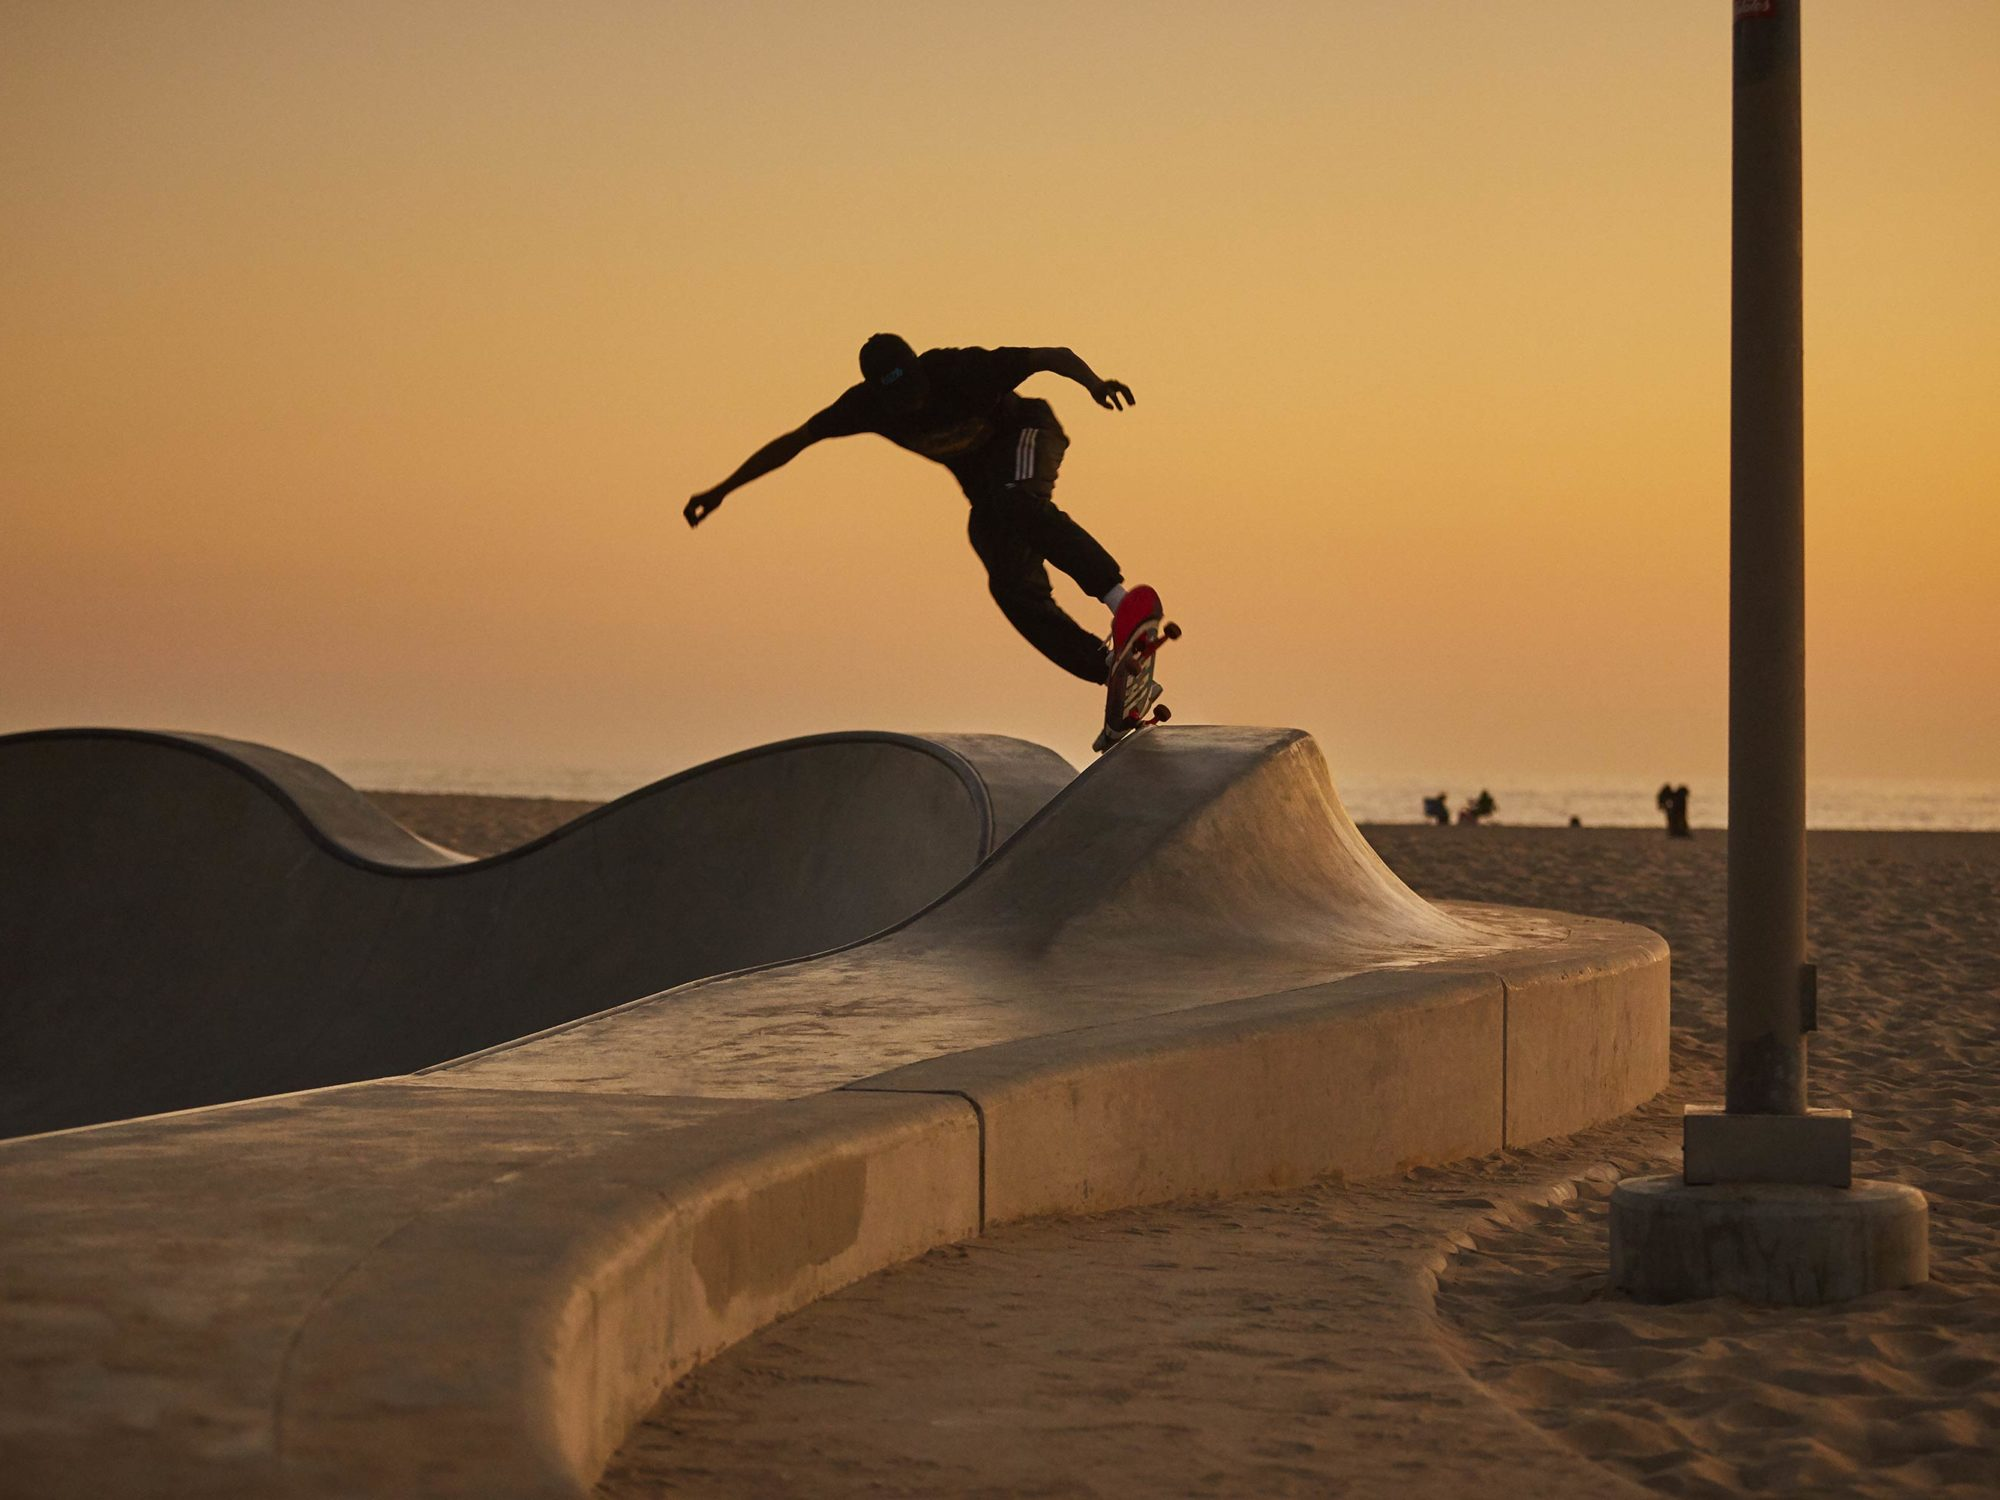 Under Last Light - Skate Park, Venice Beach Collection - Fine Art Photography by Toby Dixon